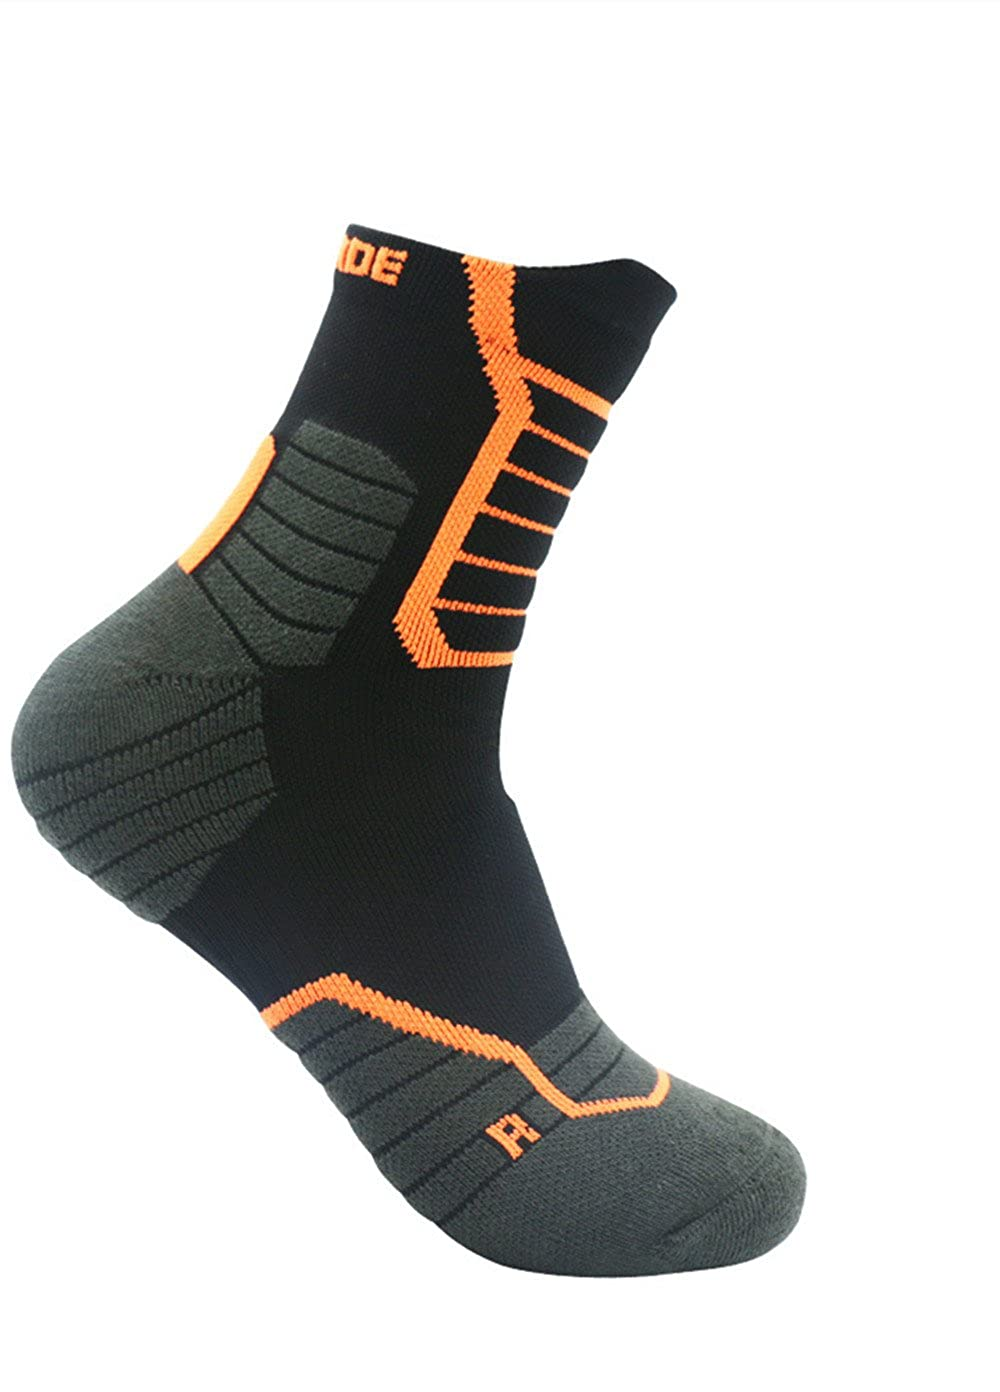 Outdoor Men's Anti-stodgy and Anti-odorizing Improve Foot Health Comfort Circulation For Mountain Running,Traveling Towel Bottom Thickening of Sports Socks.